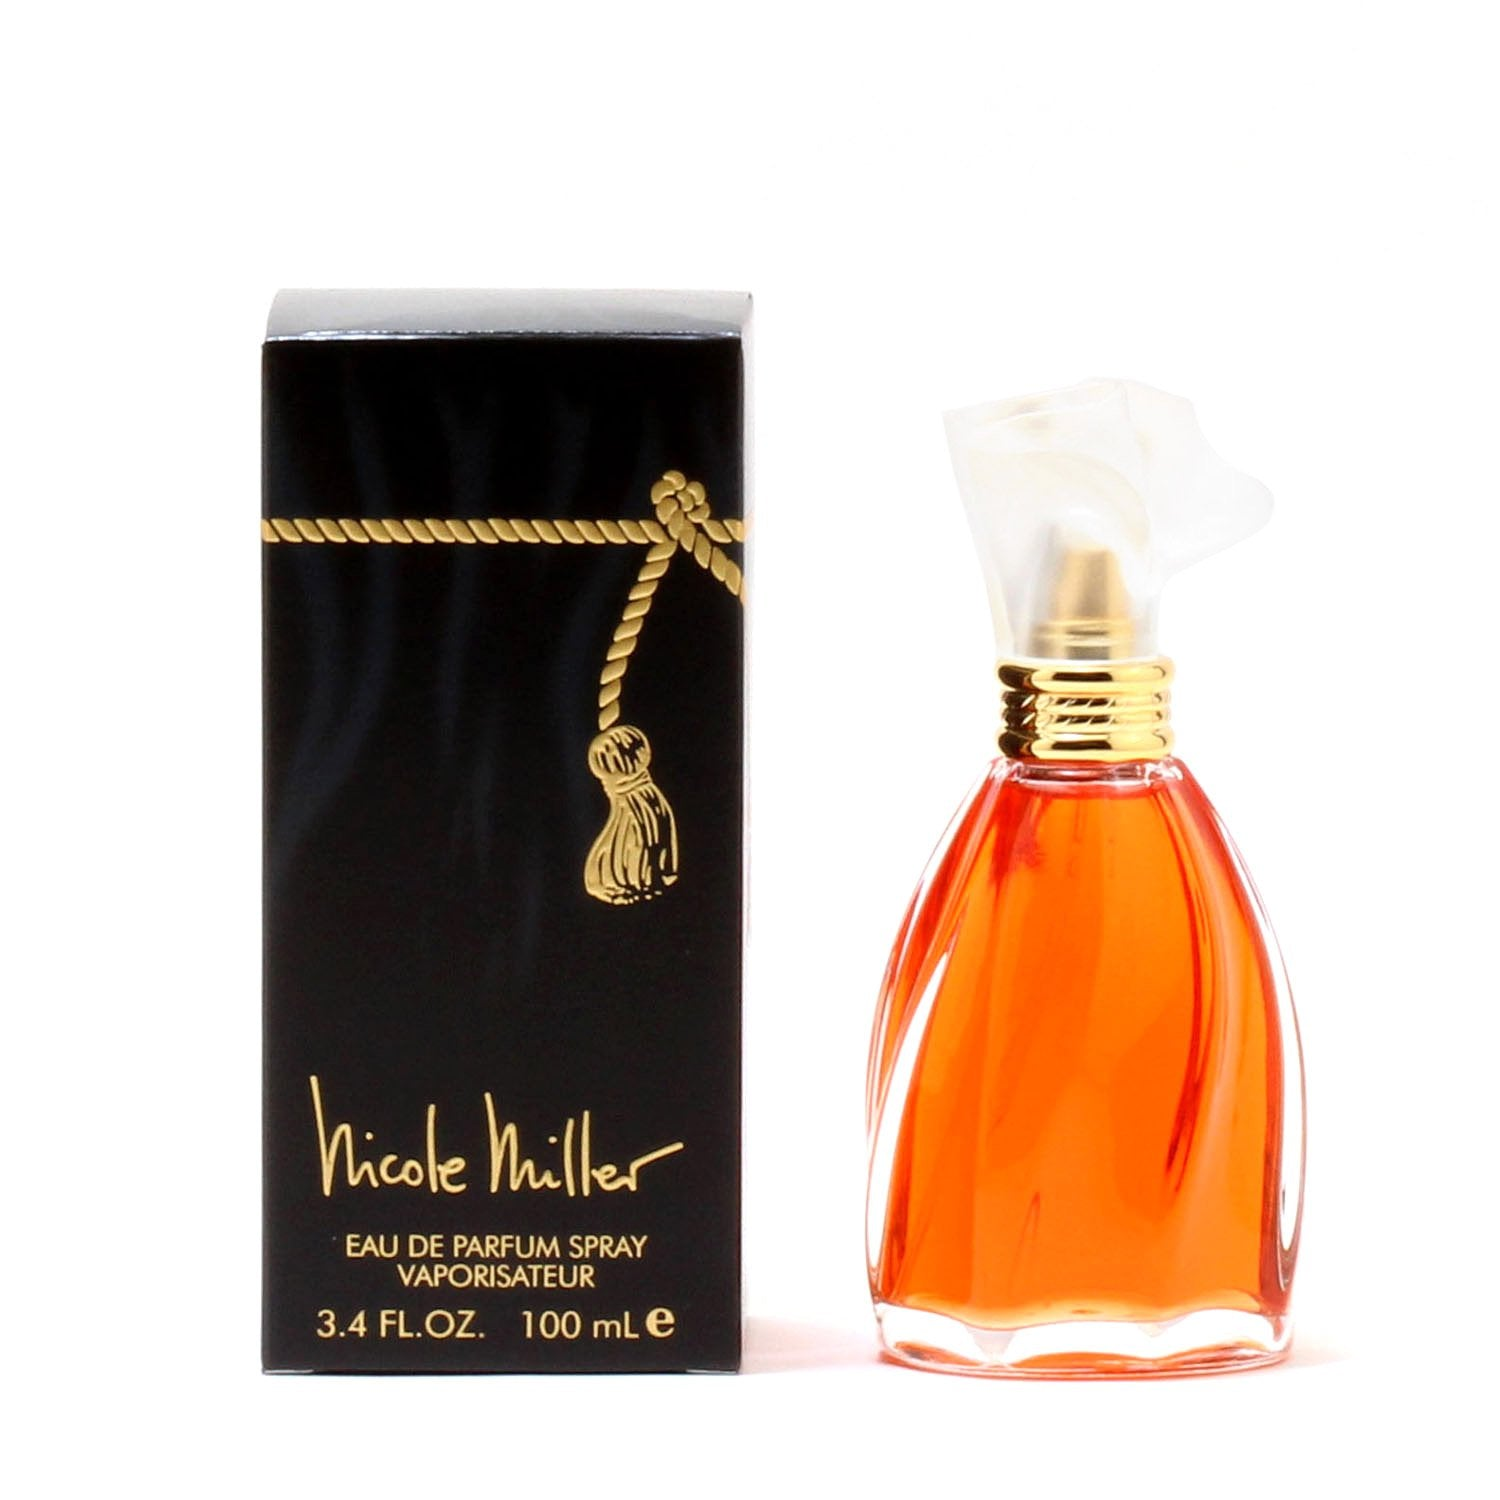 Perfume - NICOLE MILLER FOR WOMEN - EAU DE PARFUM SPRAY, 3.4 OZ